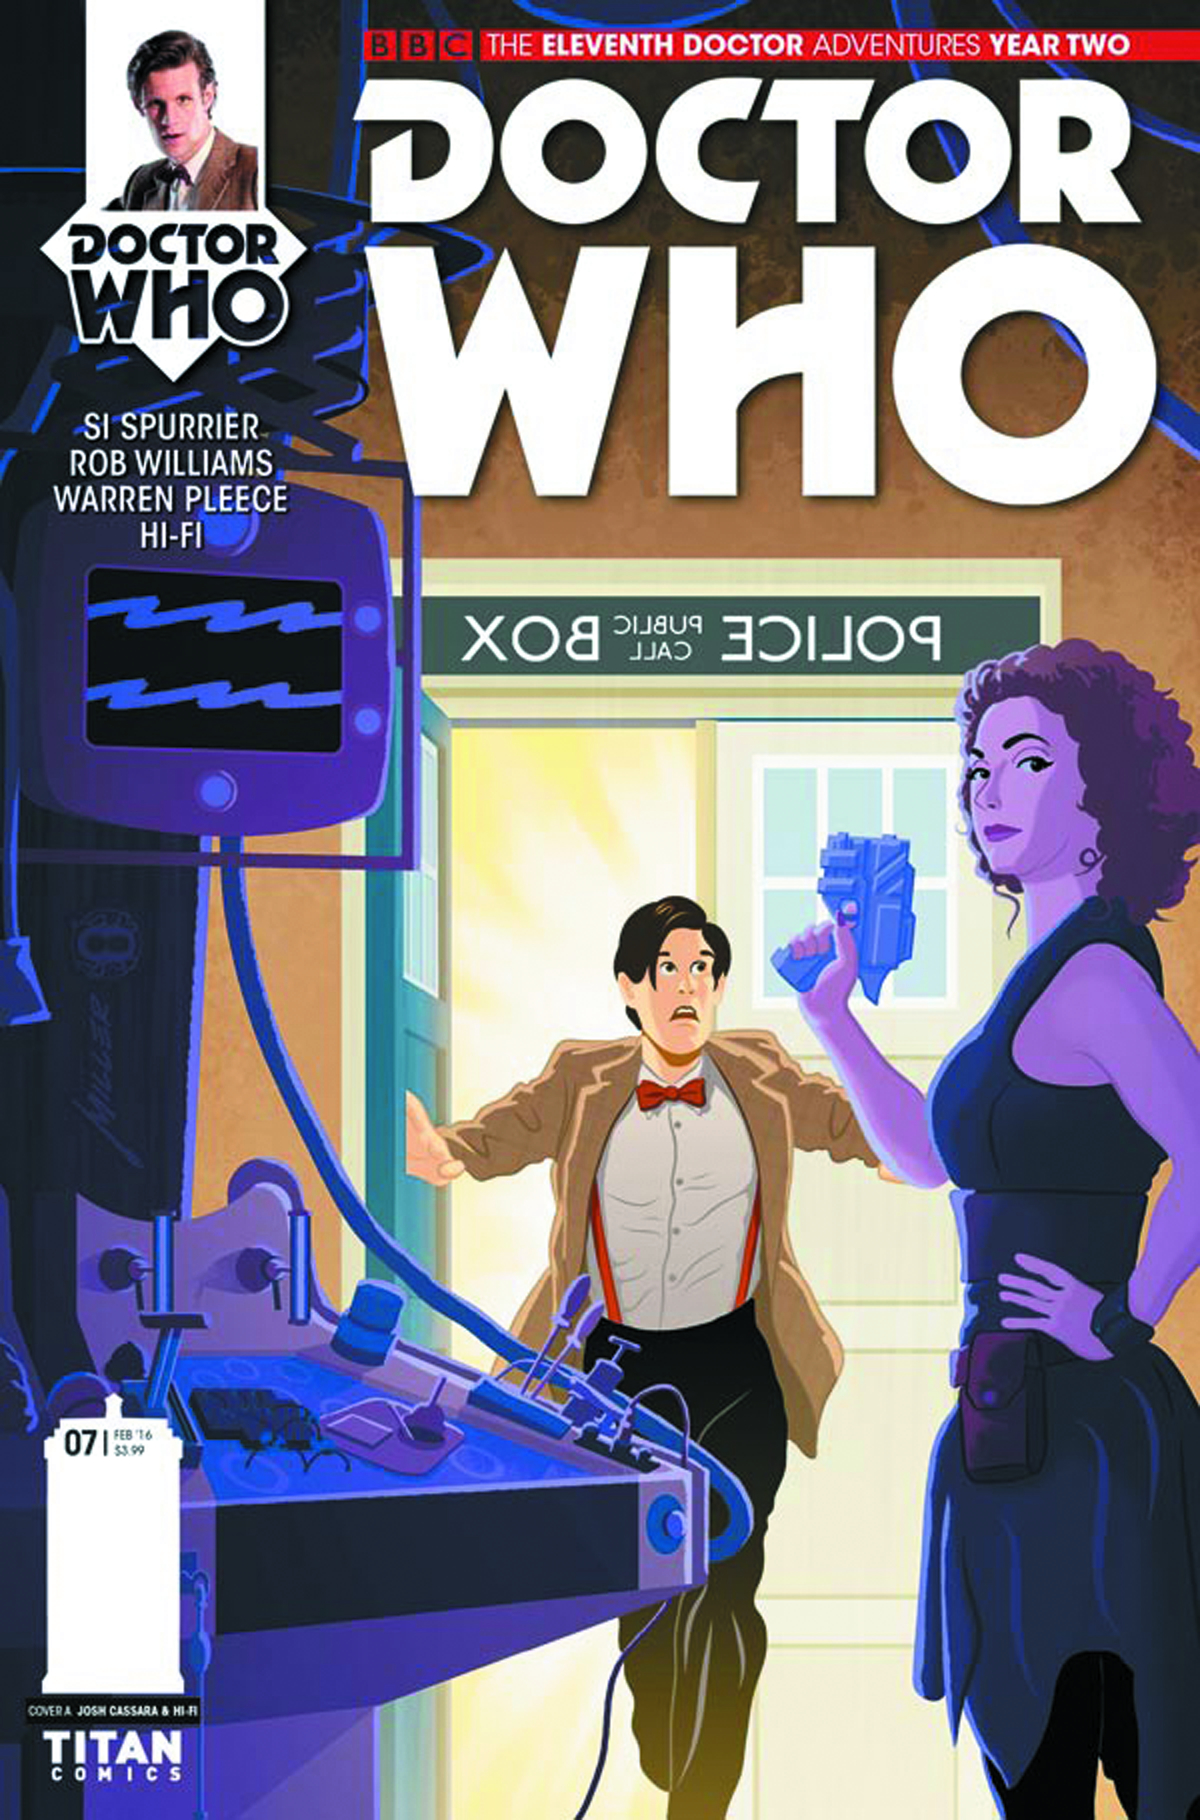 DOCTOR WHO 11TH YEAR TWO #7 CVR A MILLER